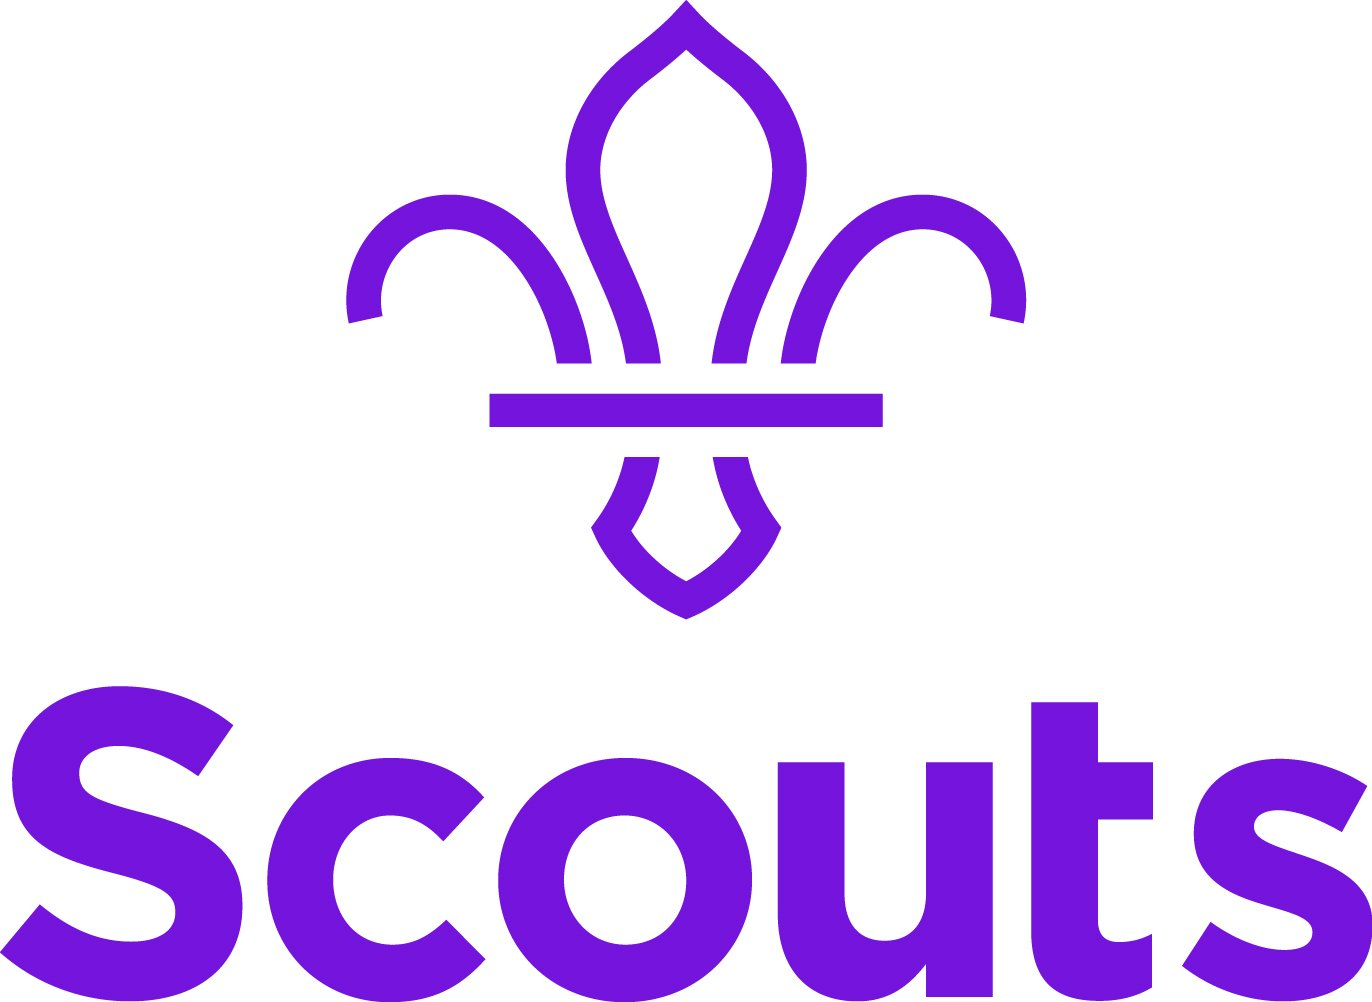 UK The Scout Association